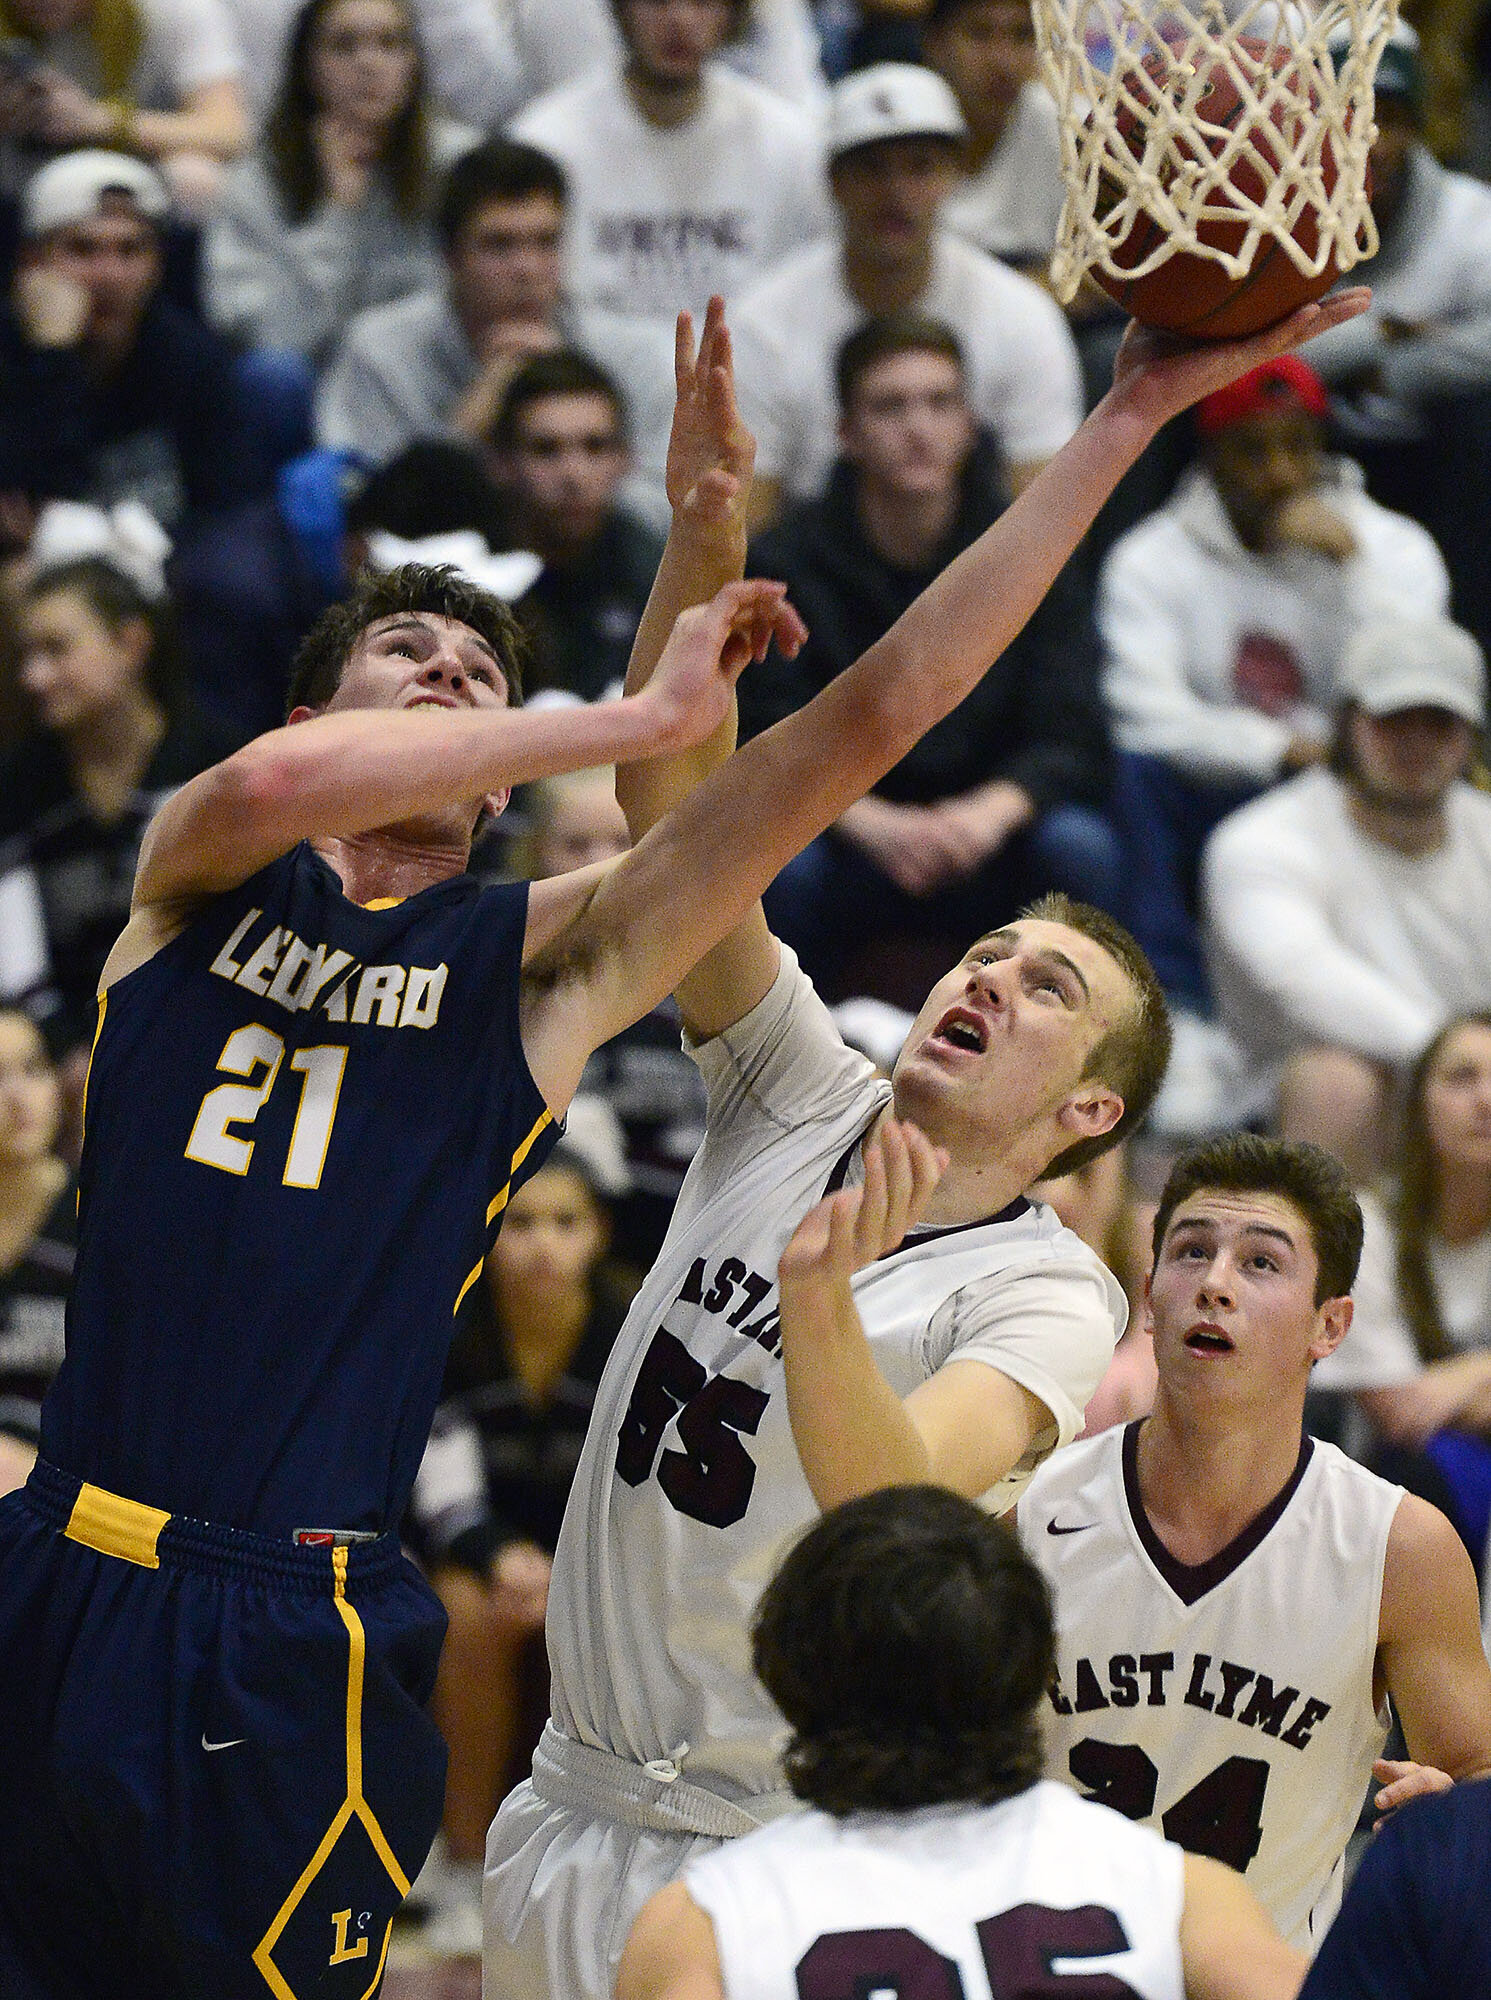 Ledyard's Trevor Hutchins (21) puts up a shot over East Lyme's Jacob Peters (55) during a boys basketball game on Thursday, Jan. 11, 2018, at East Lyme High School. Ledyard won the game 71-55. (The Day)